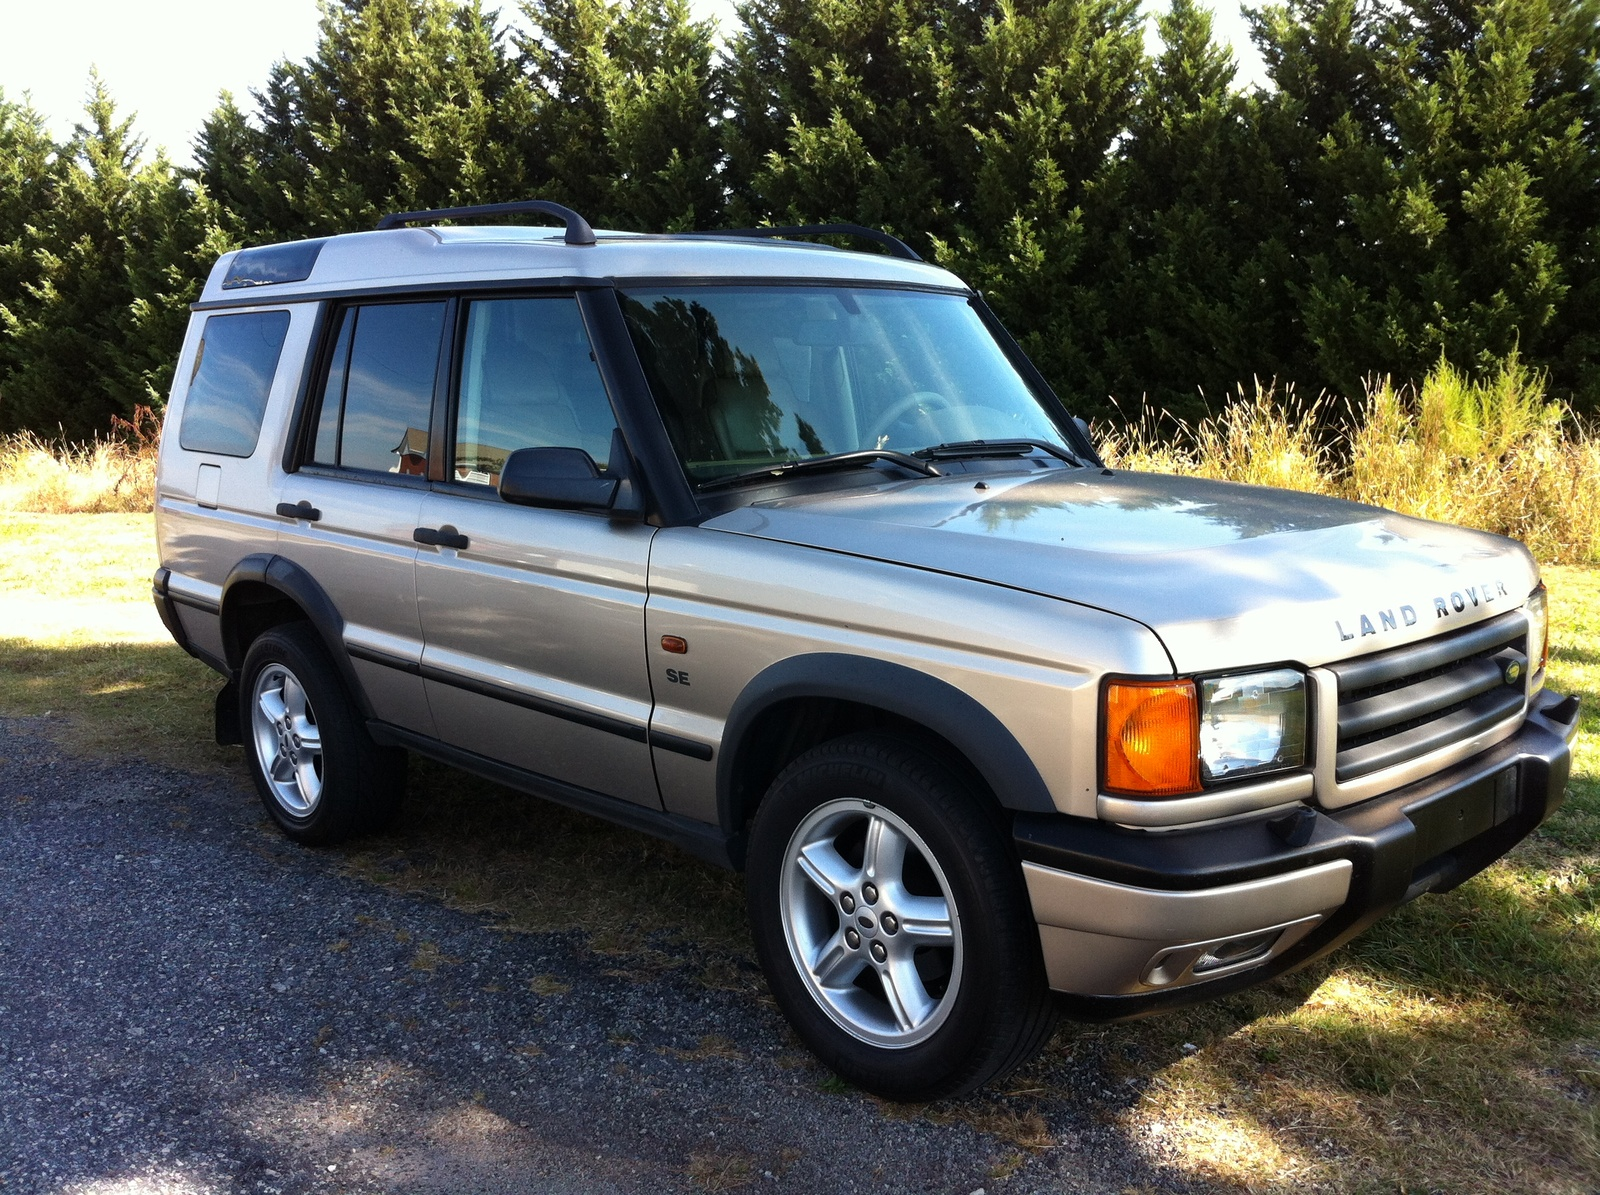 2002 land rover discovery series ii pictures cargurus. Black Bedroom Furniture Sets. Home Design Ideas